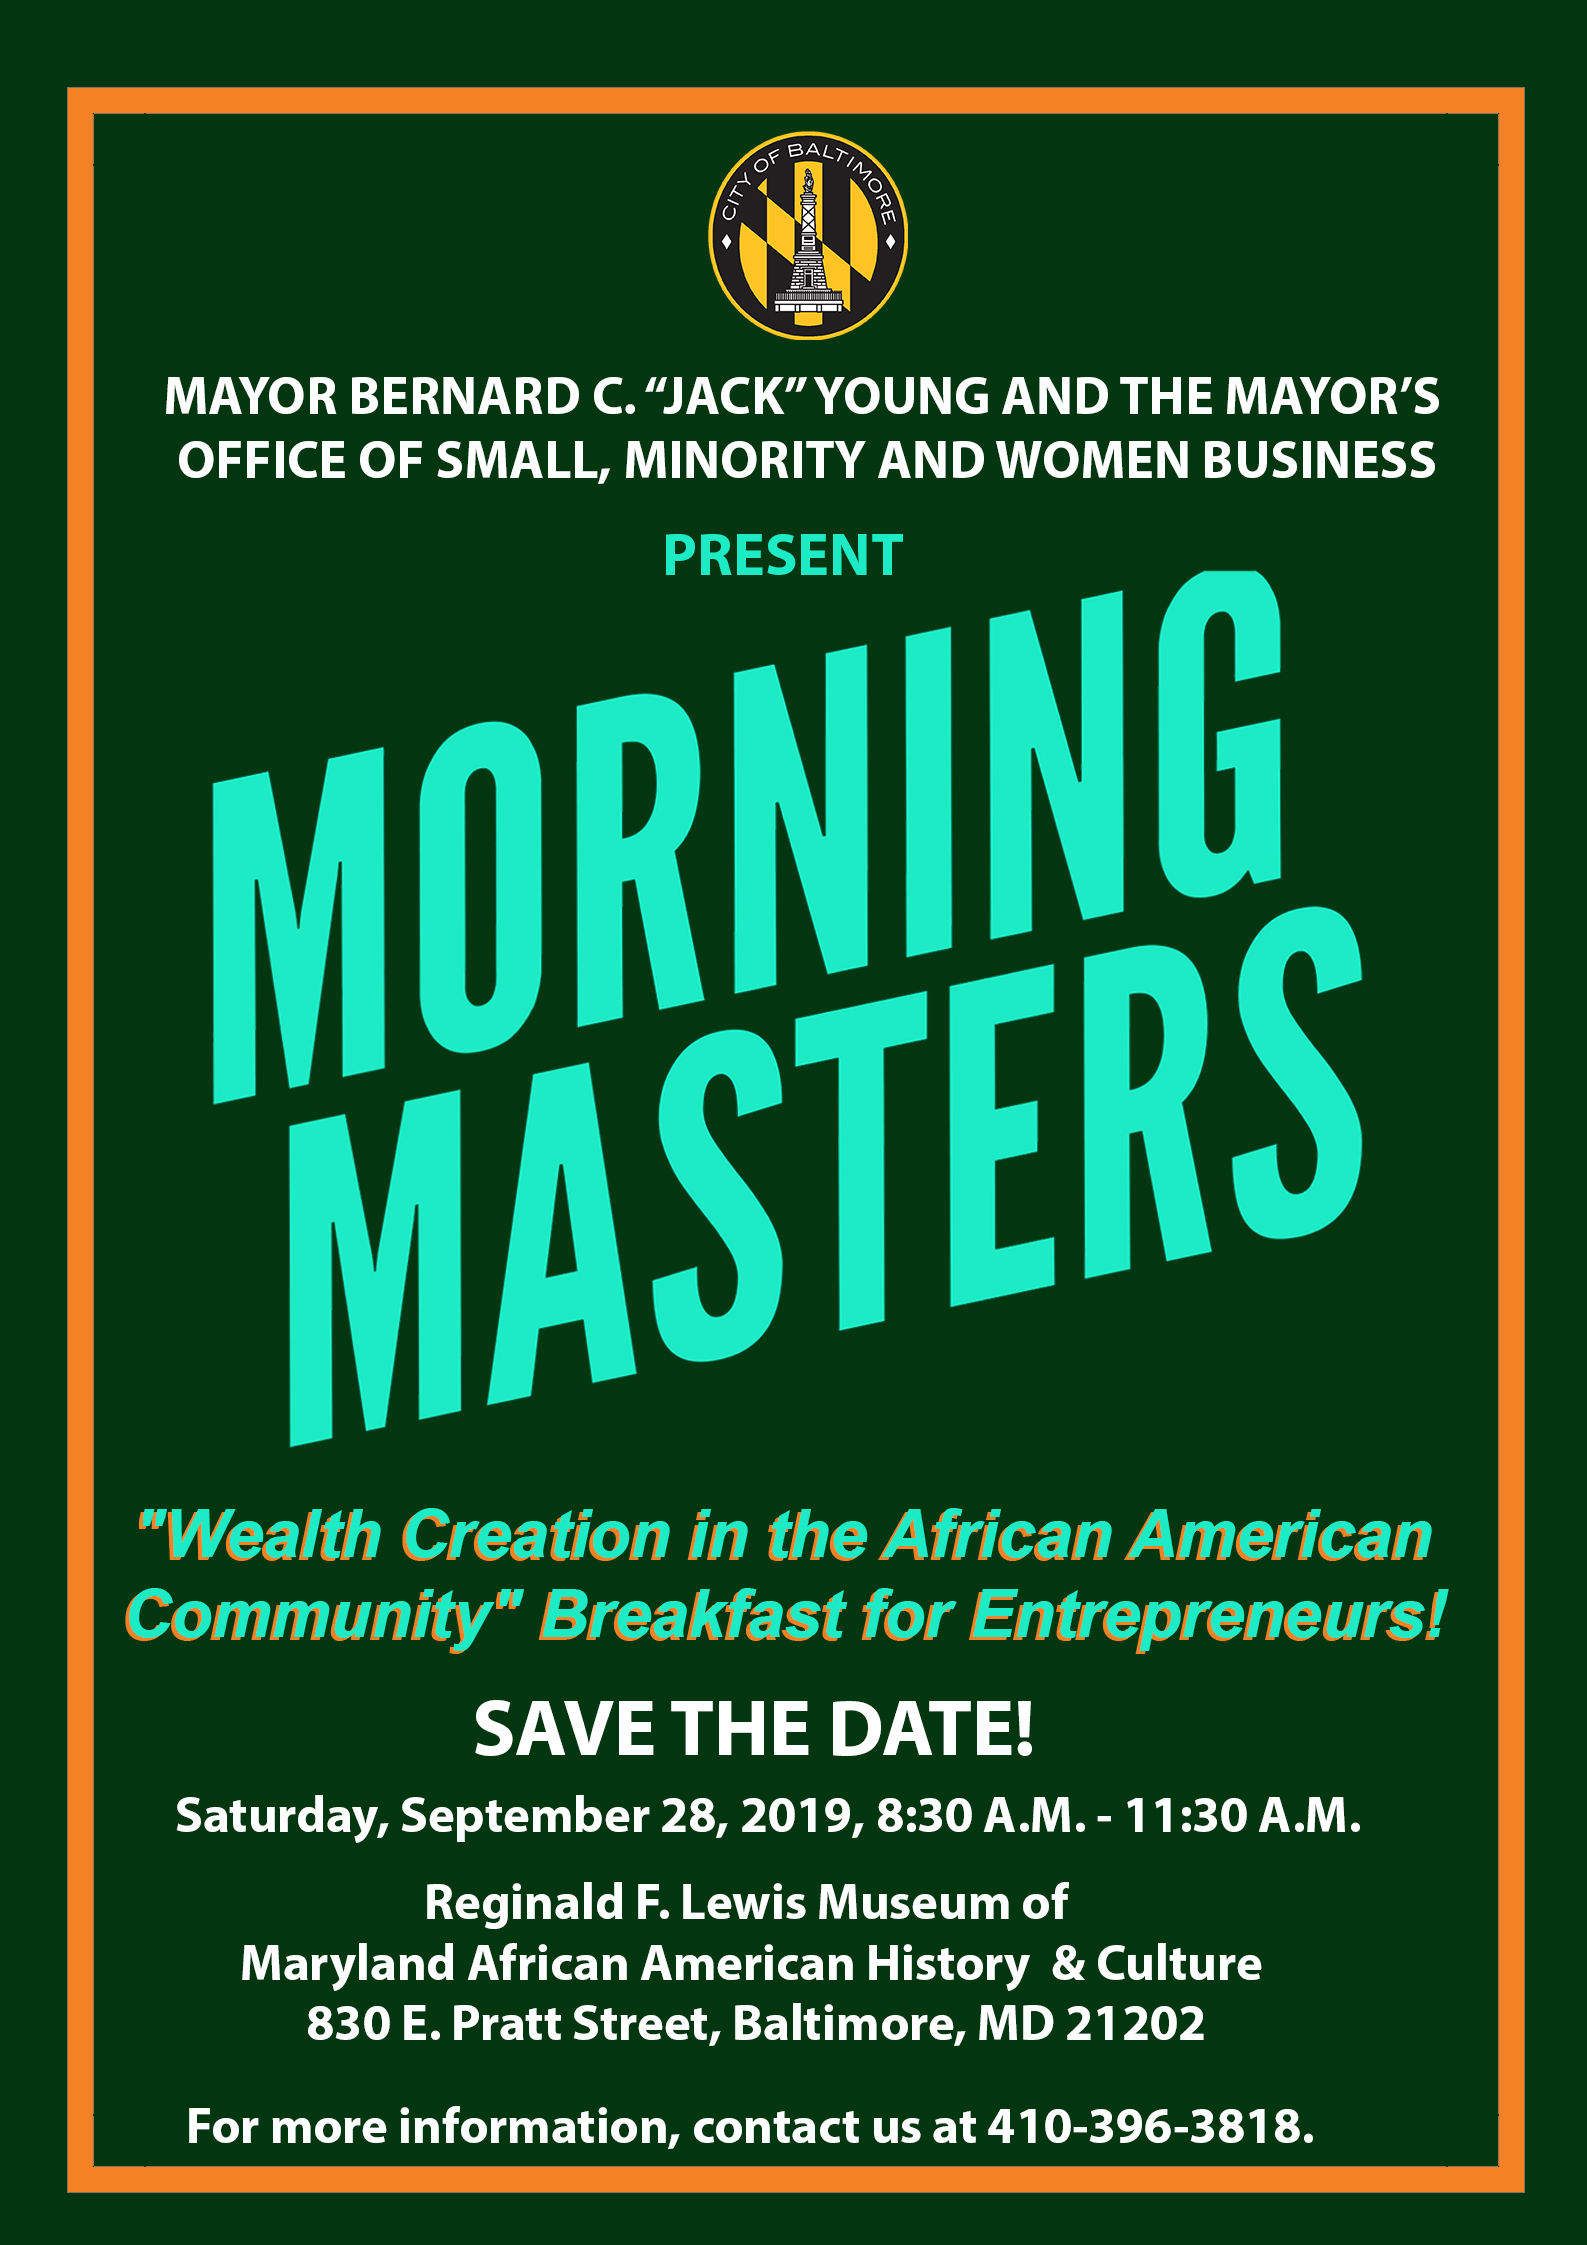 Morning Masters III Save the Date Flier.sept282019.jpg